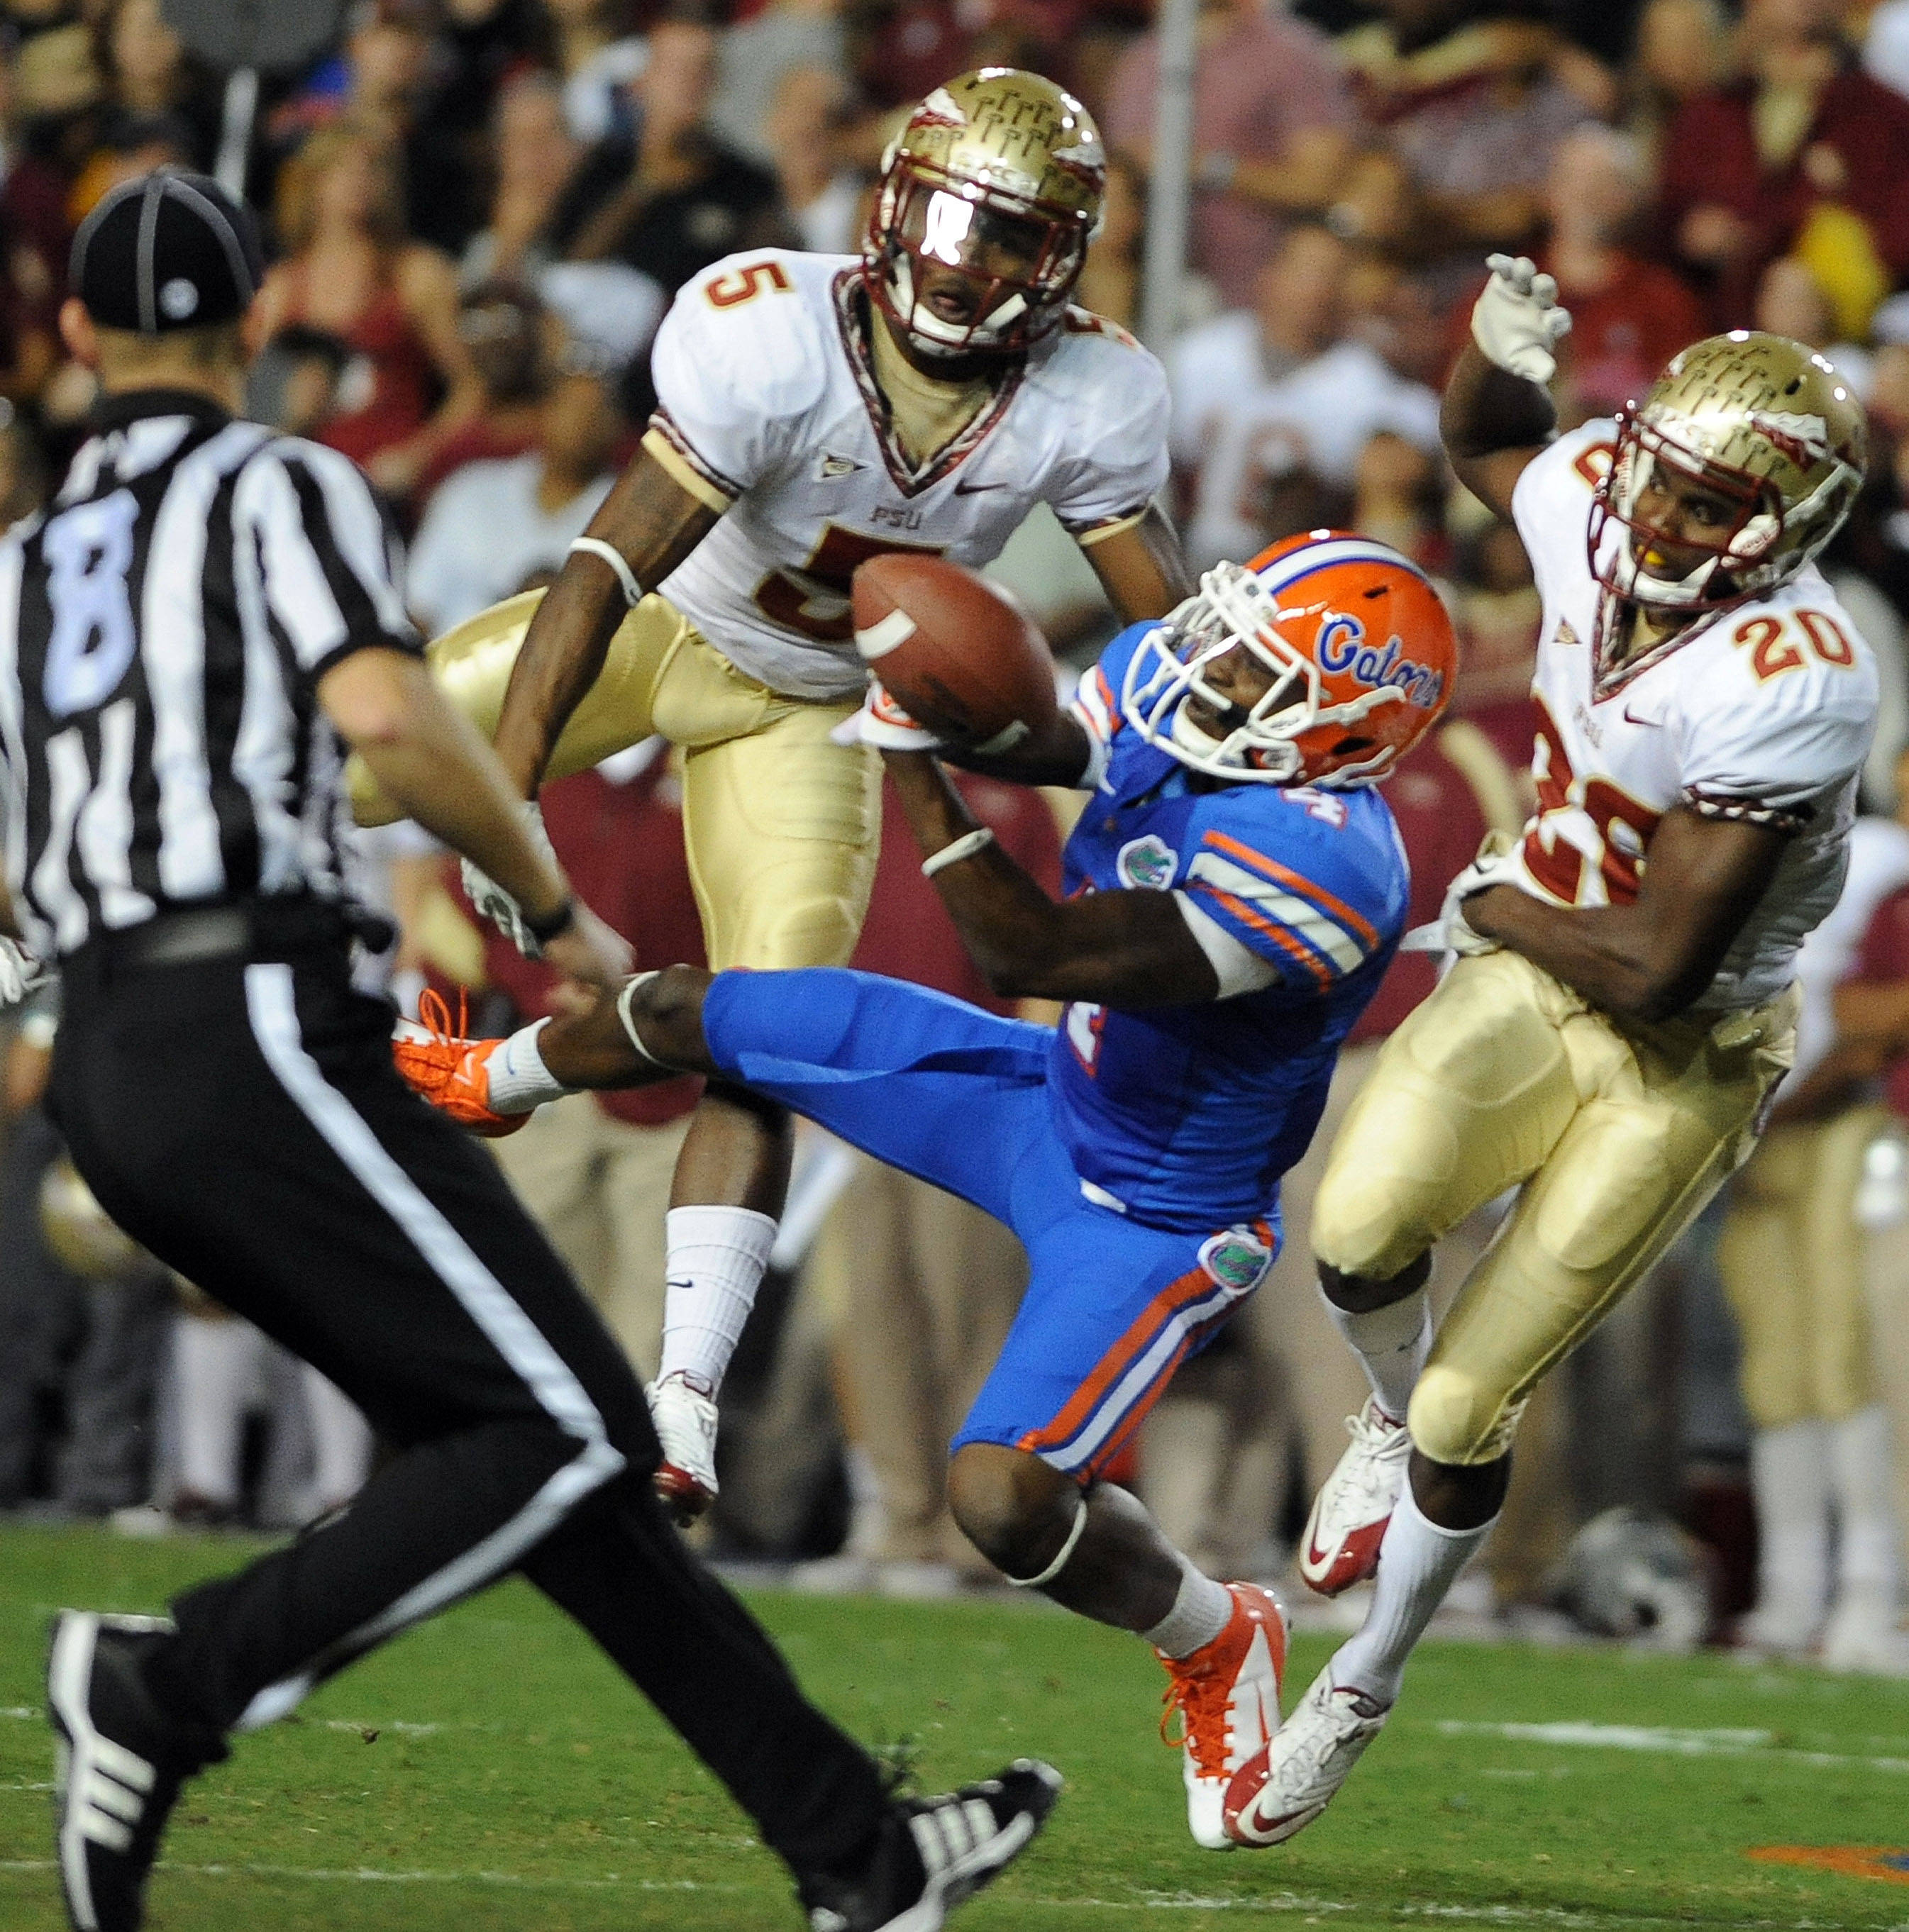 Florida wide receiver Andre Debose (4) tries to hang on to the ball but Florida State's Florida State cornerback Greg Reid (5) and Florida State safety Lamarcus Joyner (20) break up the pass during the first half of an NCAA college football game in Gainesville, Fla.,  Saturday, Nov. 26, 2011. (AP Photo/ Phil Sandlin)